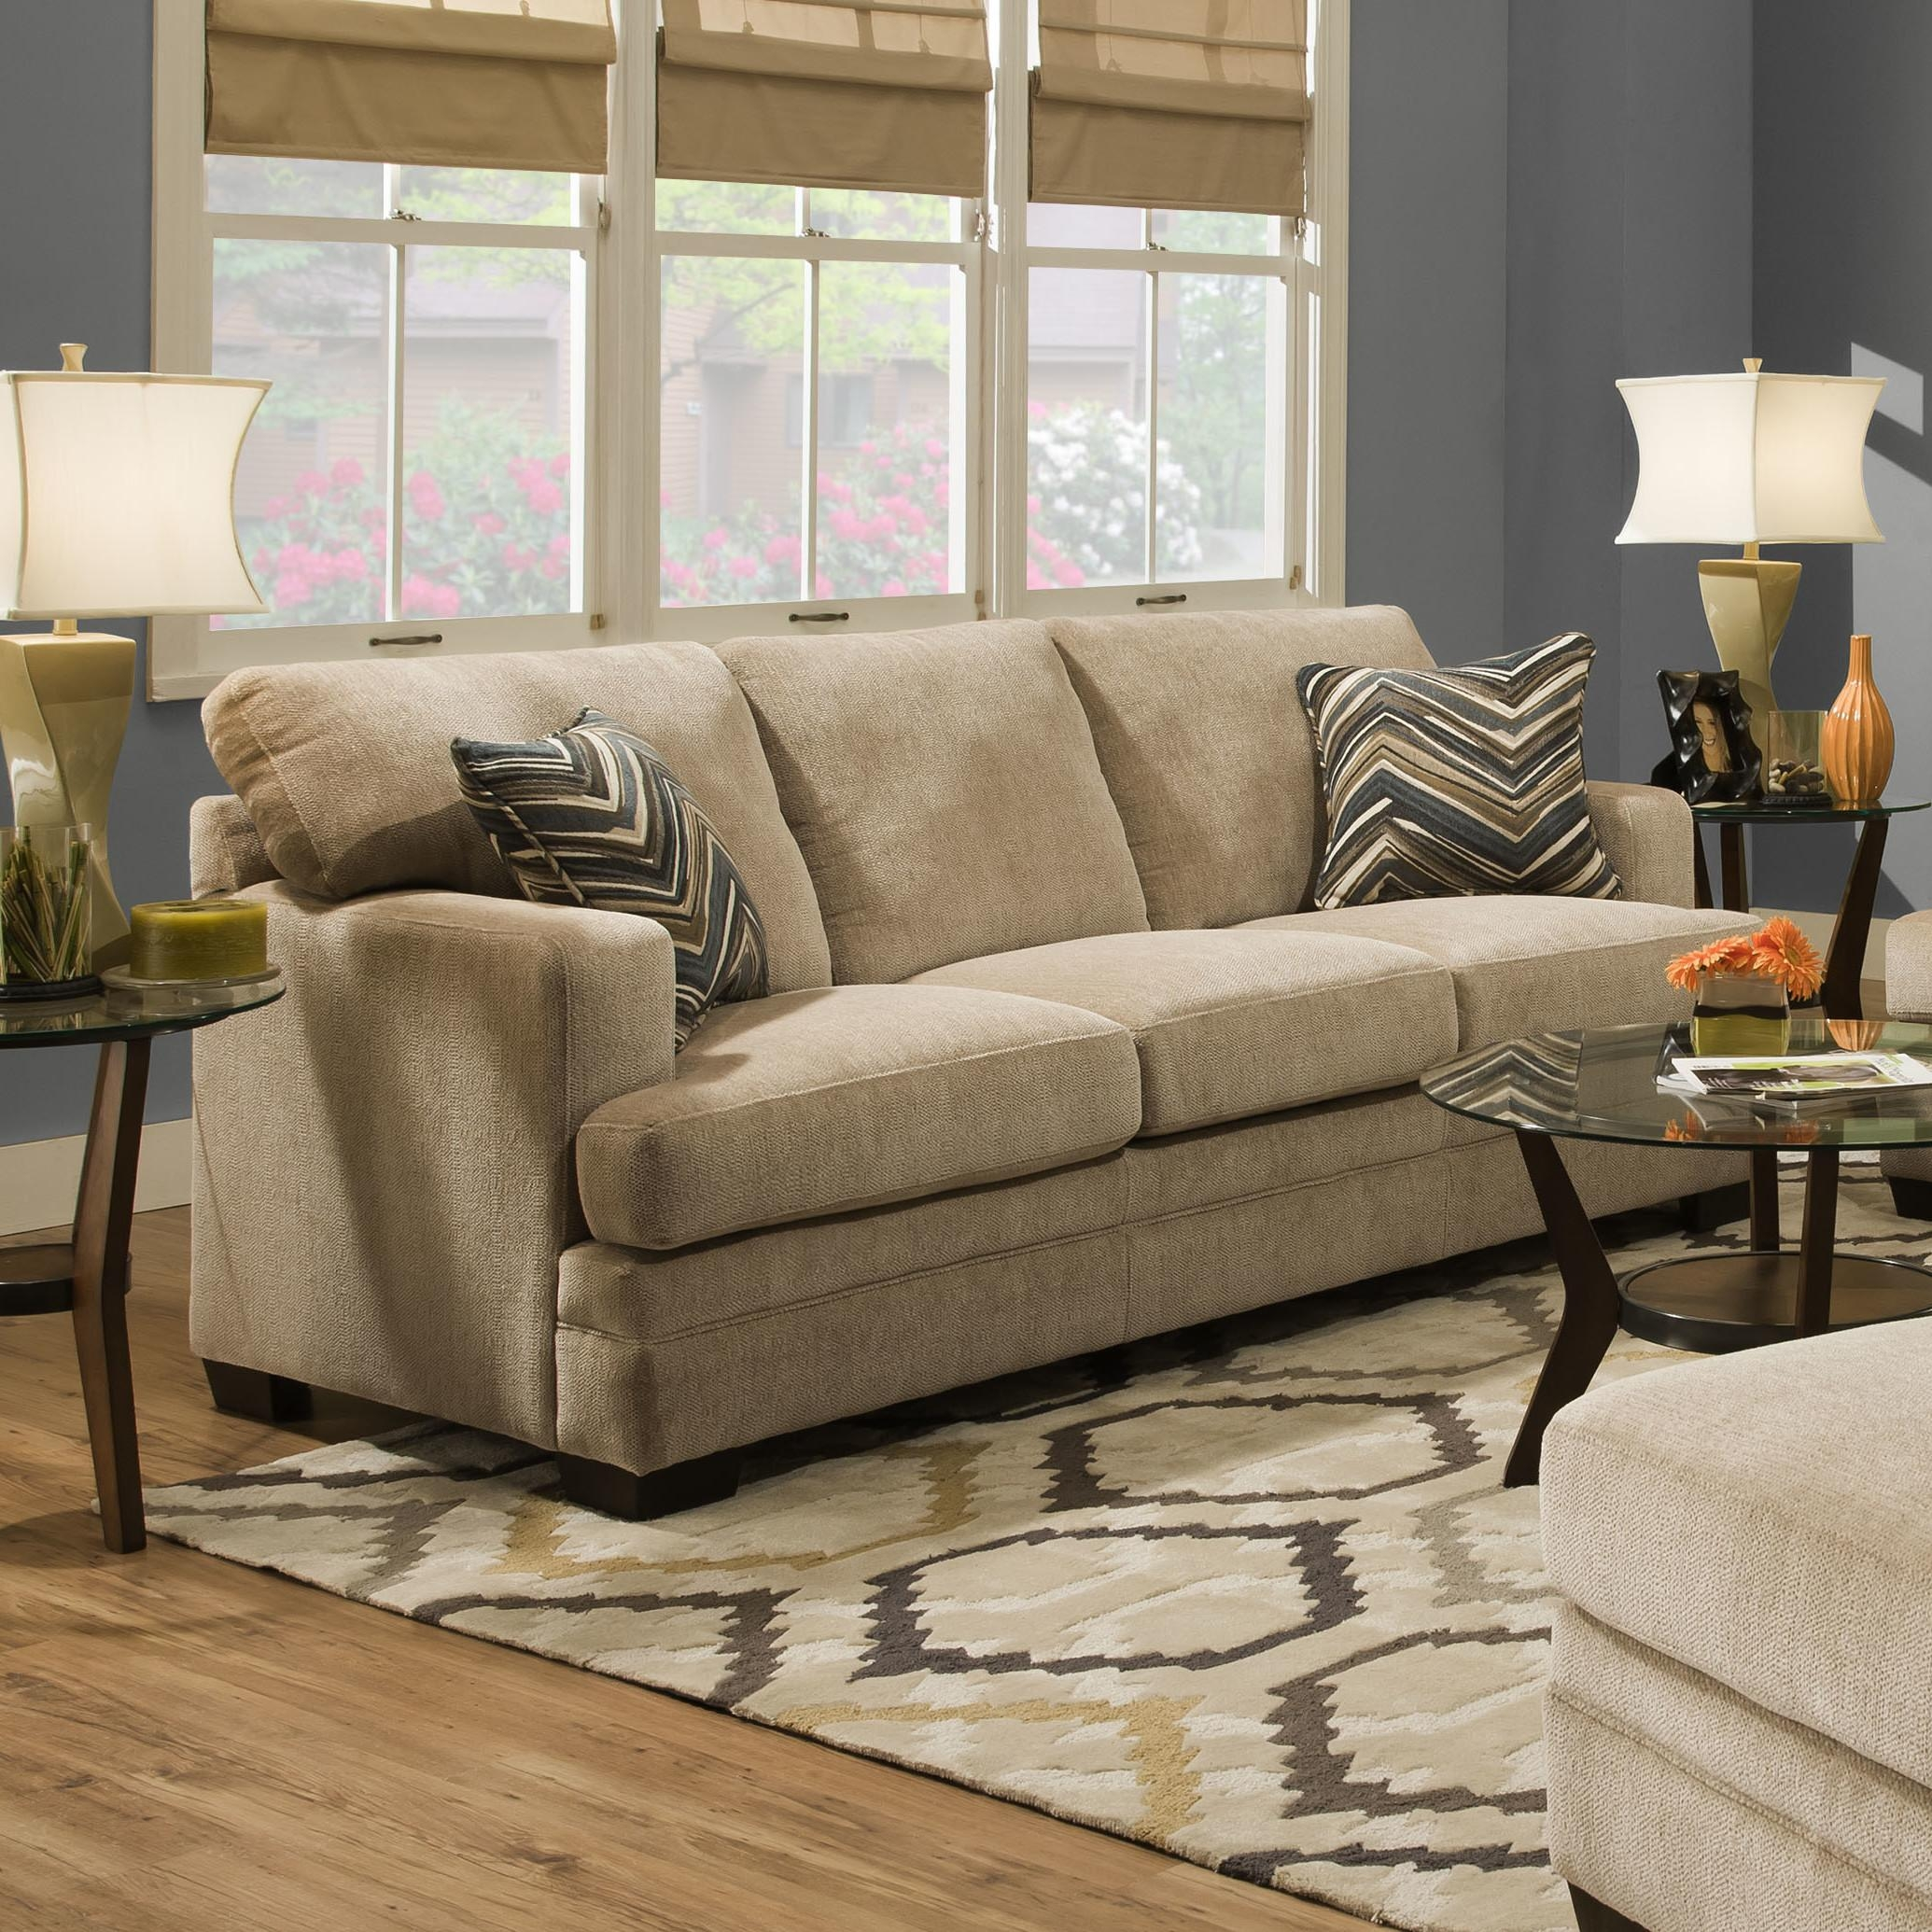 Simmons Sofas Reviews | Tehranmix Decoration With Regard To Simmons Chaise Sofa (View 13 of 20)